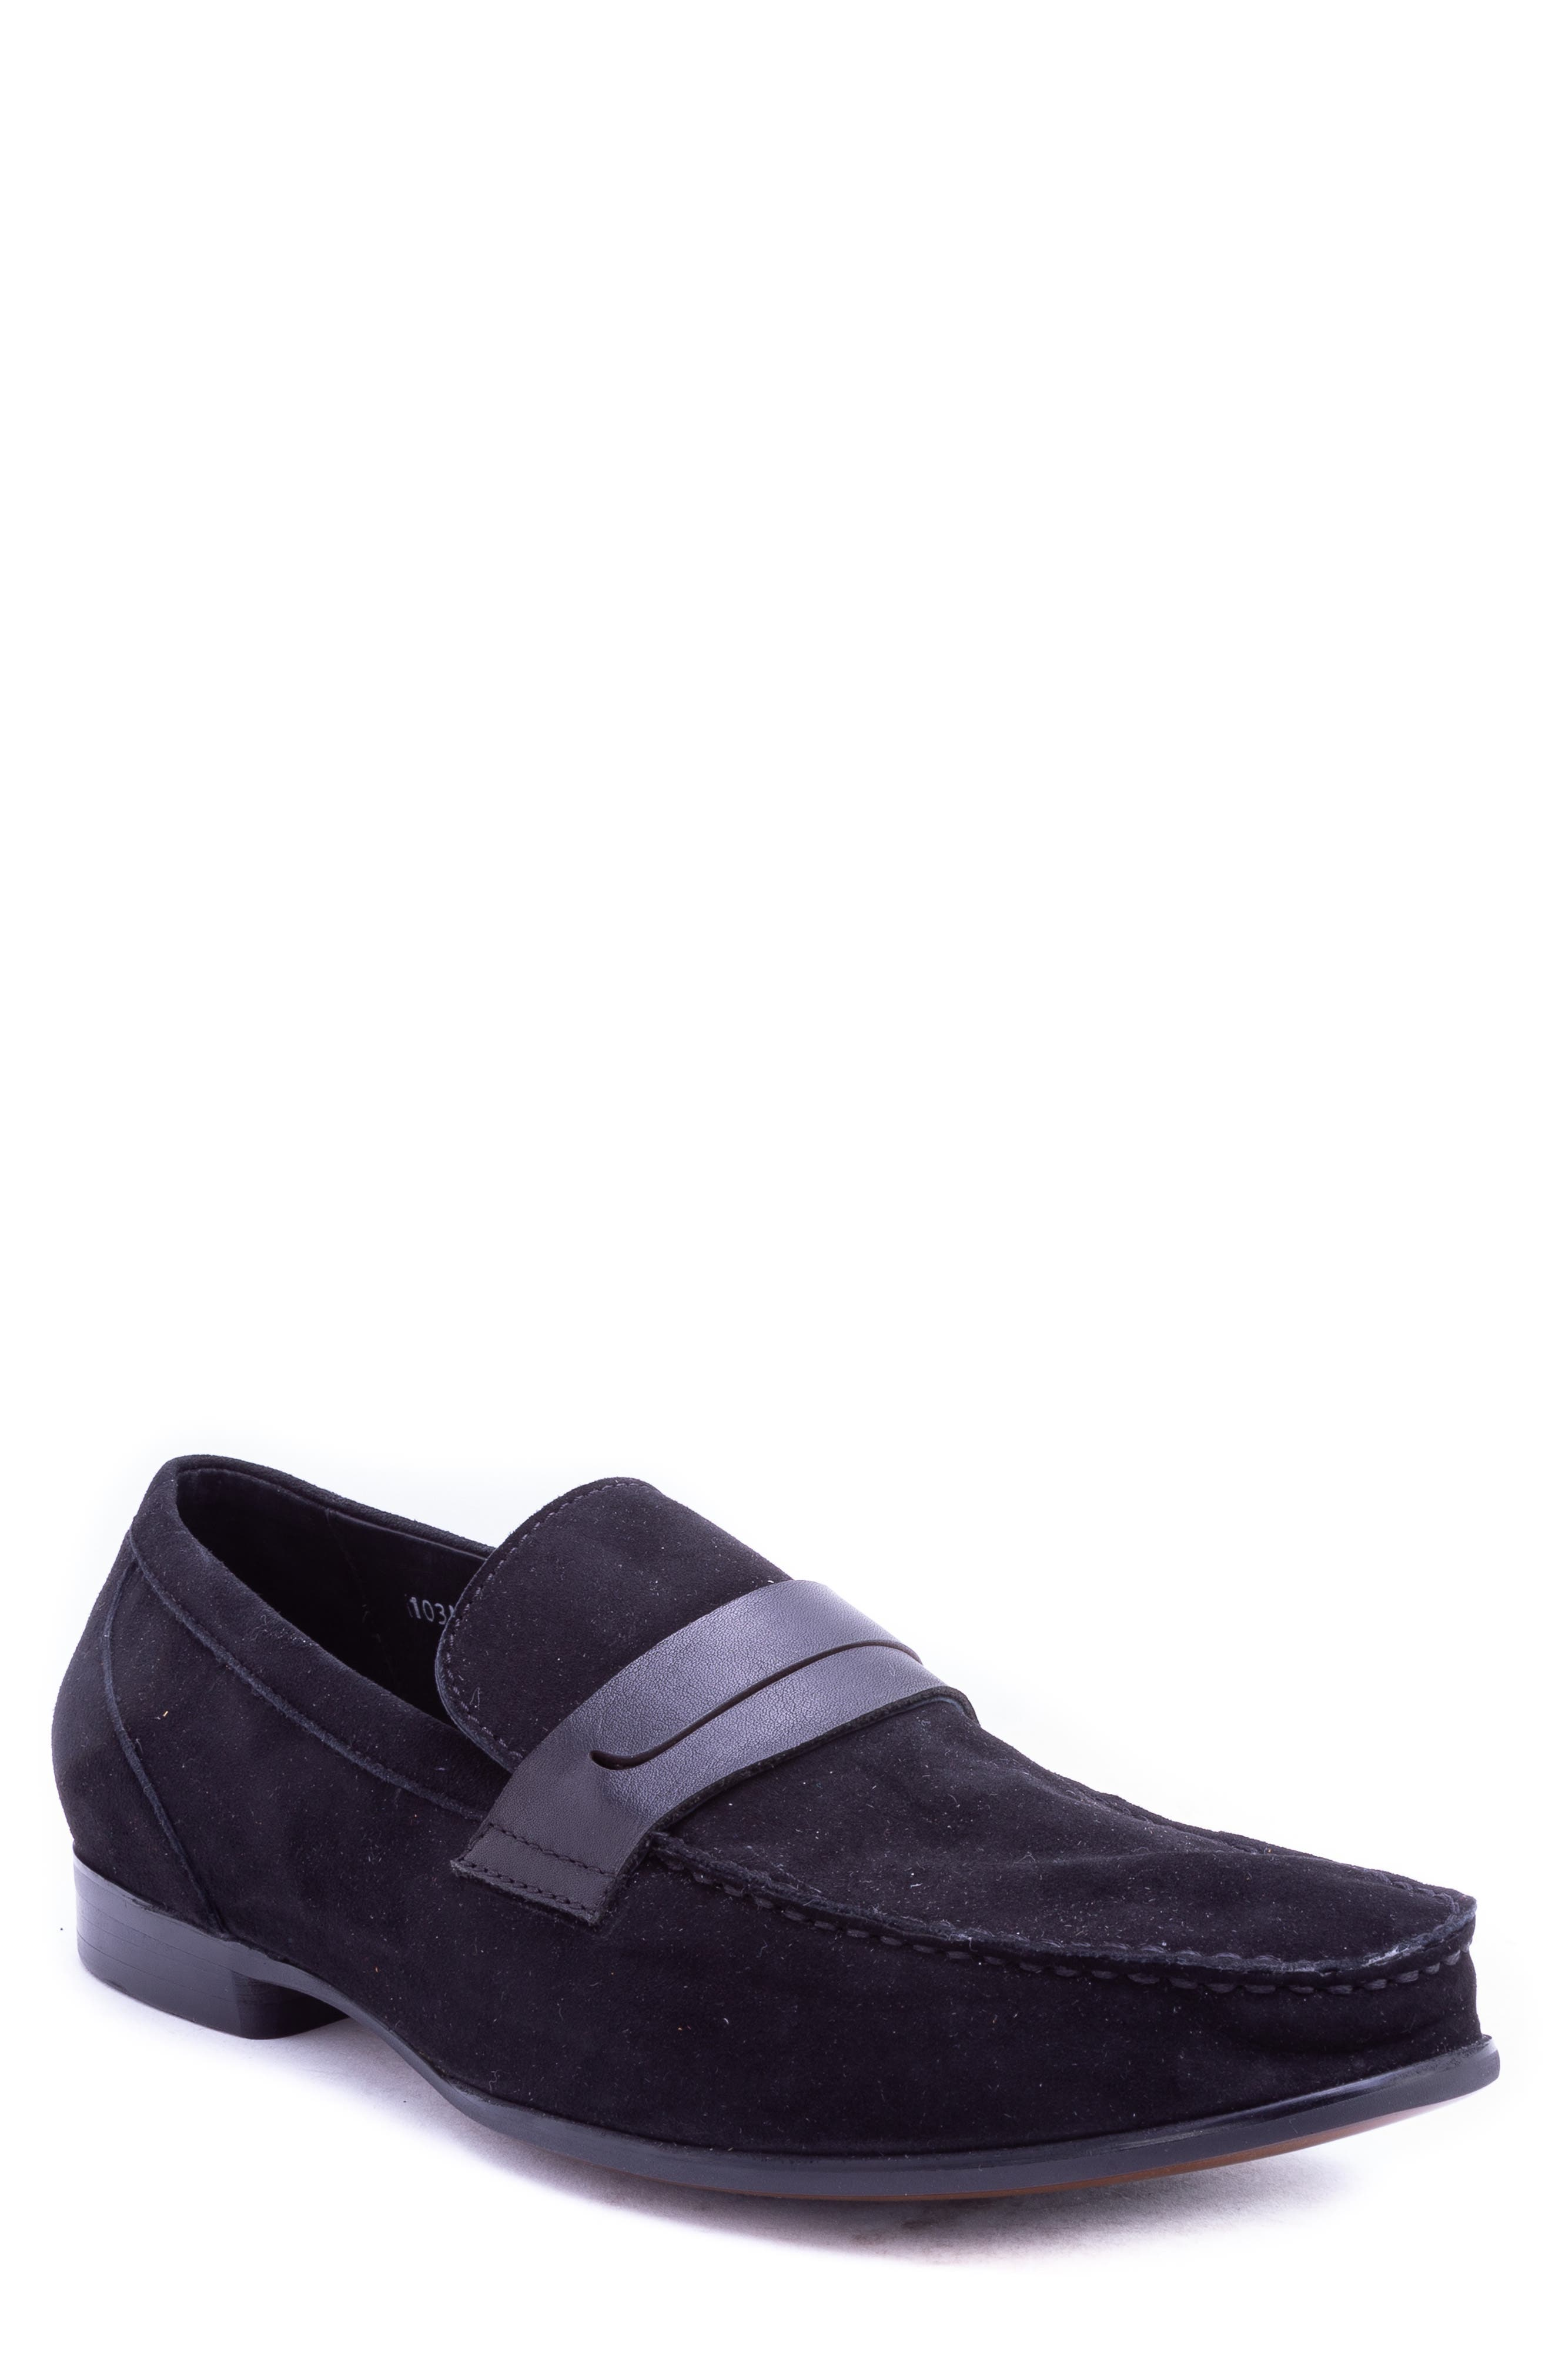 Opie Penny Loafer,                         Main,                         color, BLACK SUEDE/ LEATHER